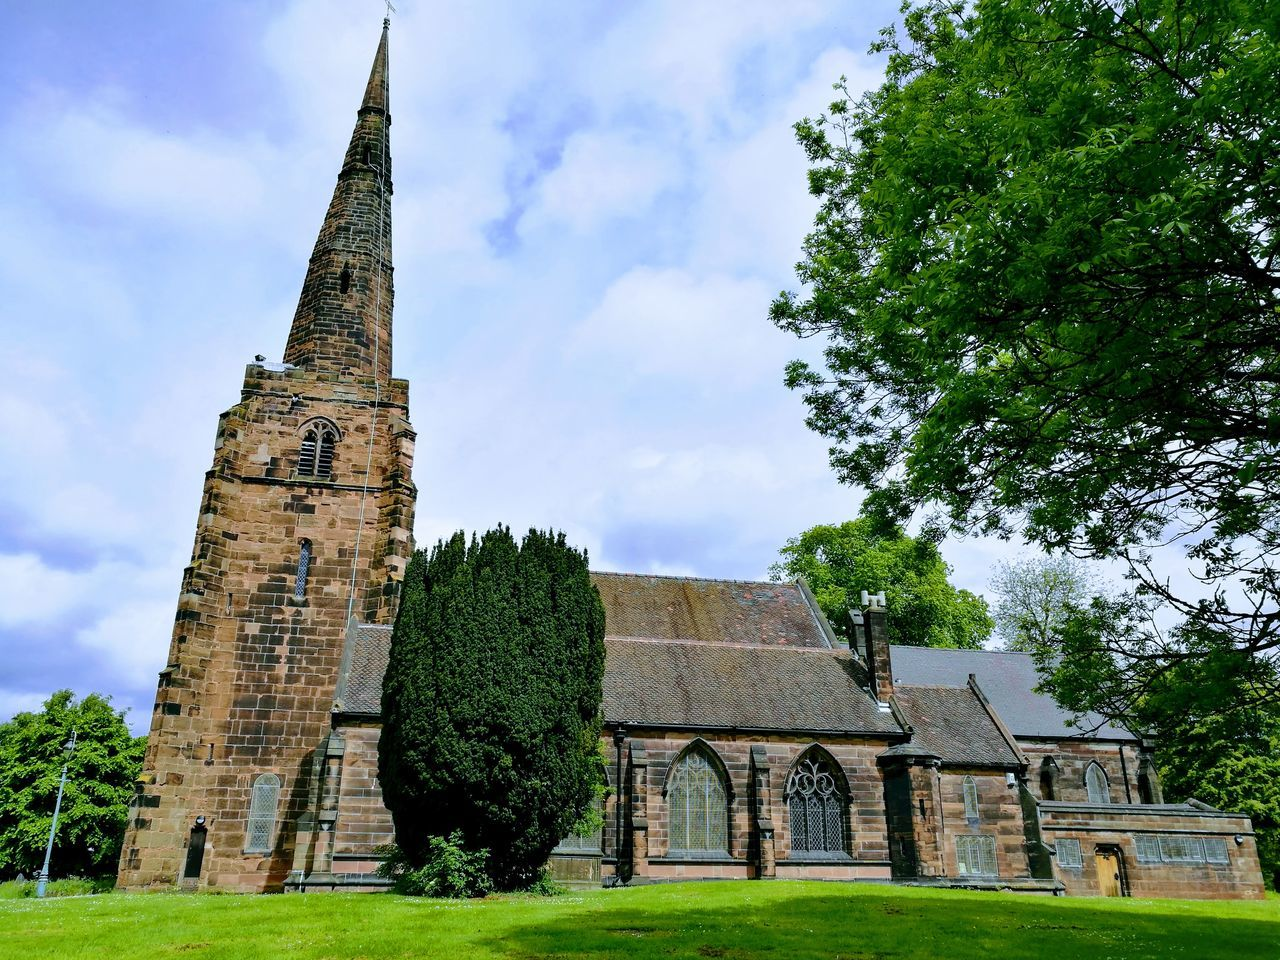 Architecture Grass History Built Structure Building Exterior Day Outdoors Tree No People Sky Nature Church Lichfield Graveyard Beauty Saint Michael Church Architecture Place Of Worship St Michaels Curch Cloud - Sky Historic History Architecture